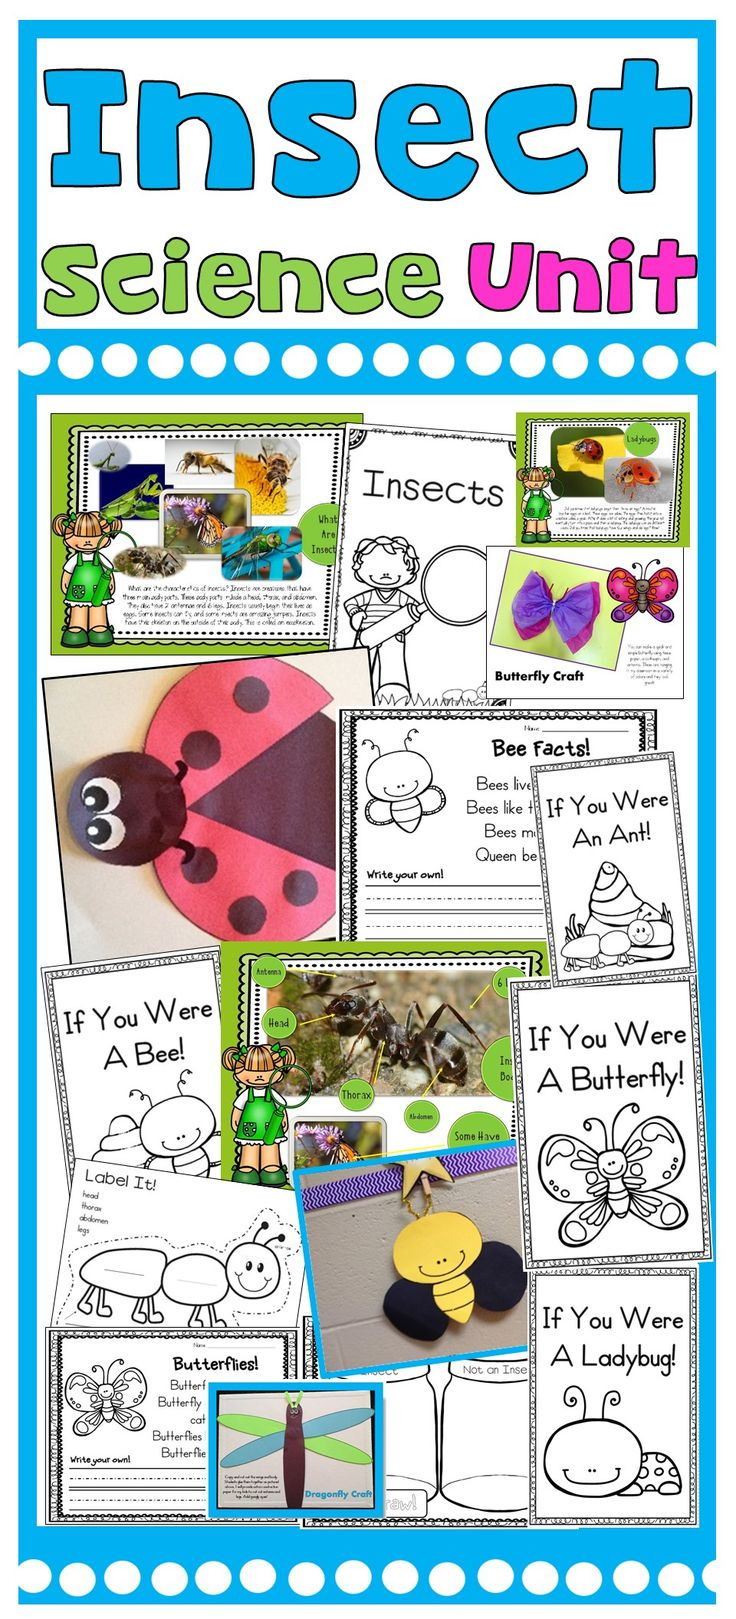 Insect Activities-Butterflies, Ladybugs, Ants, Bees, Grasshoppers, and more!